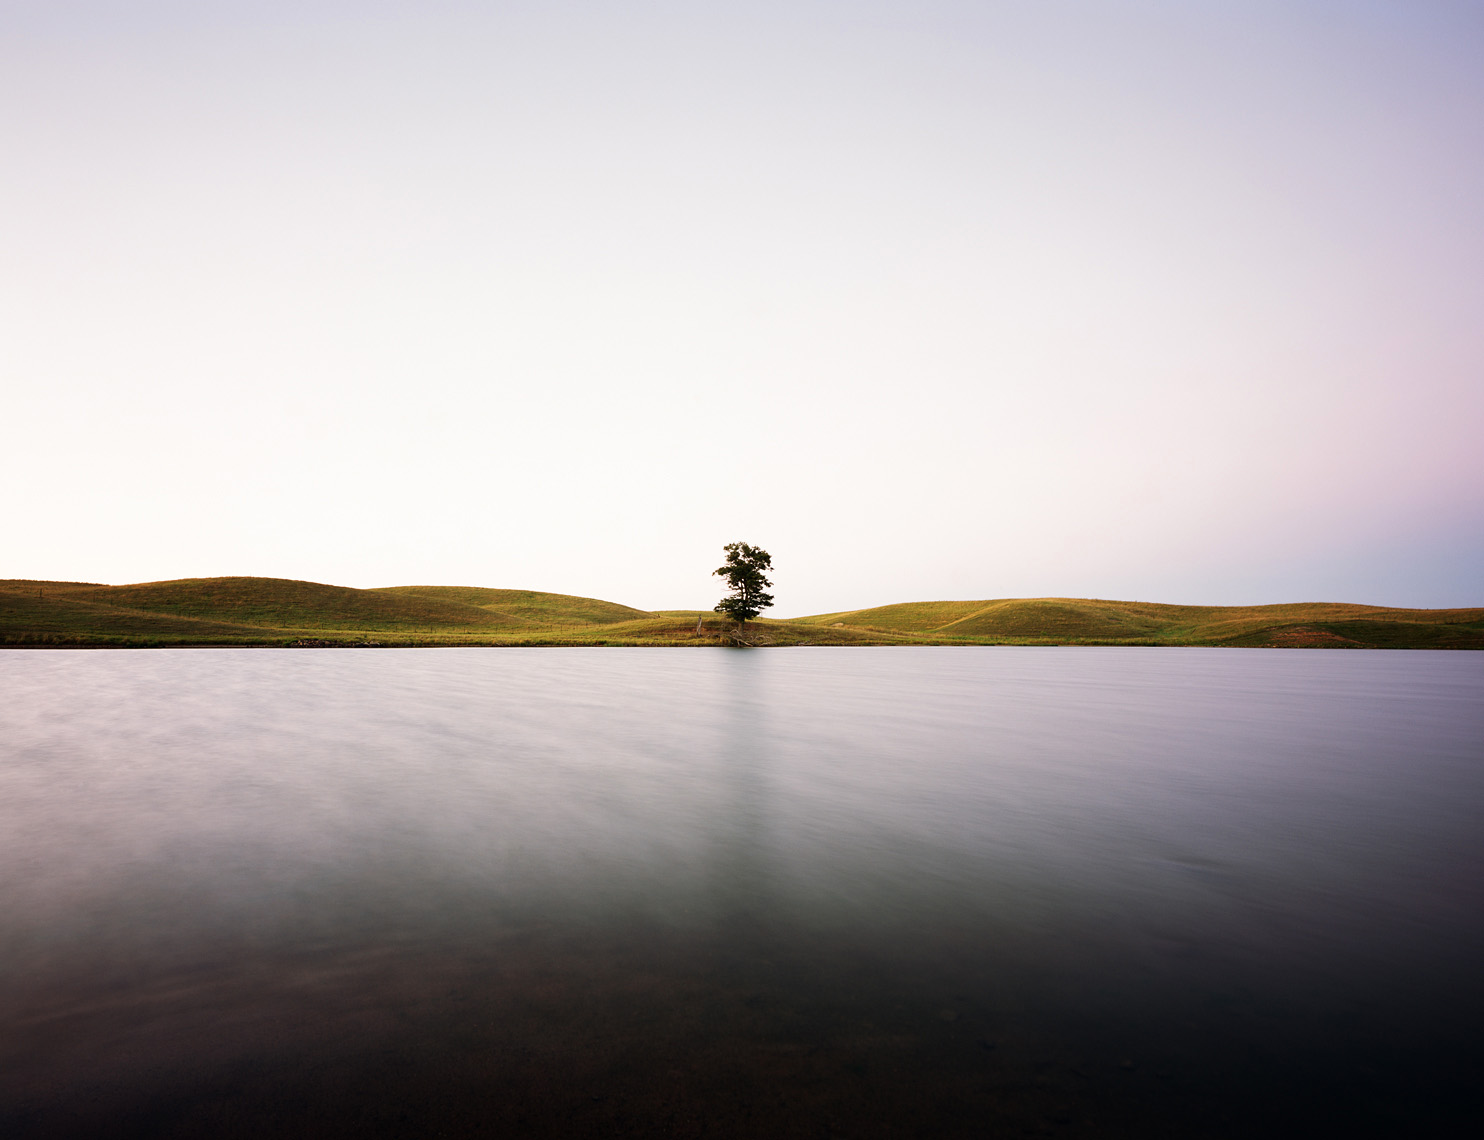 David Bowman fine art water architecture landscape photographs 003